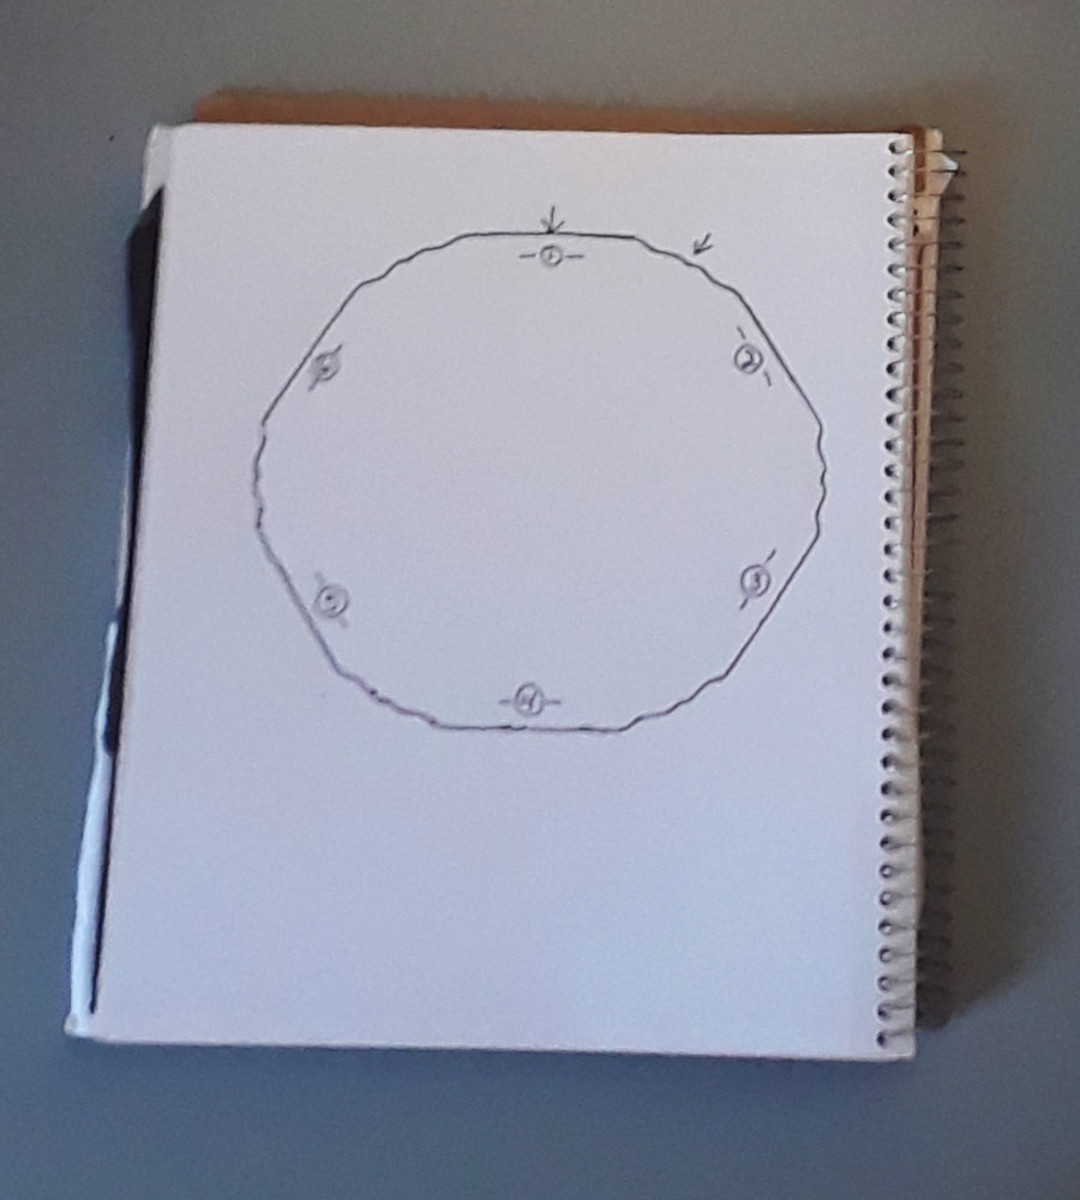 Trace a plate onto a piece of paper to see the outline